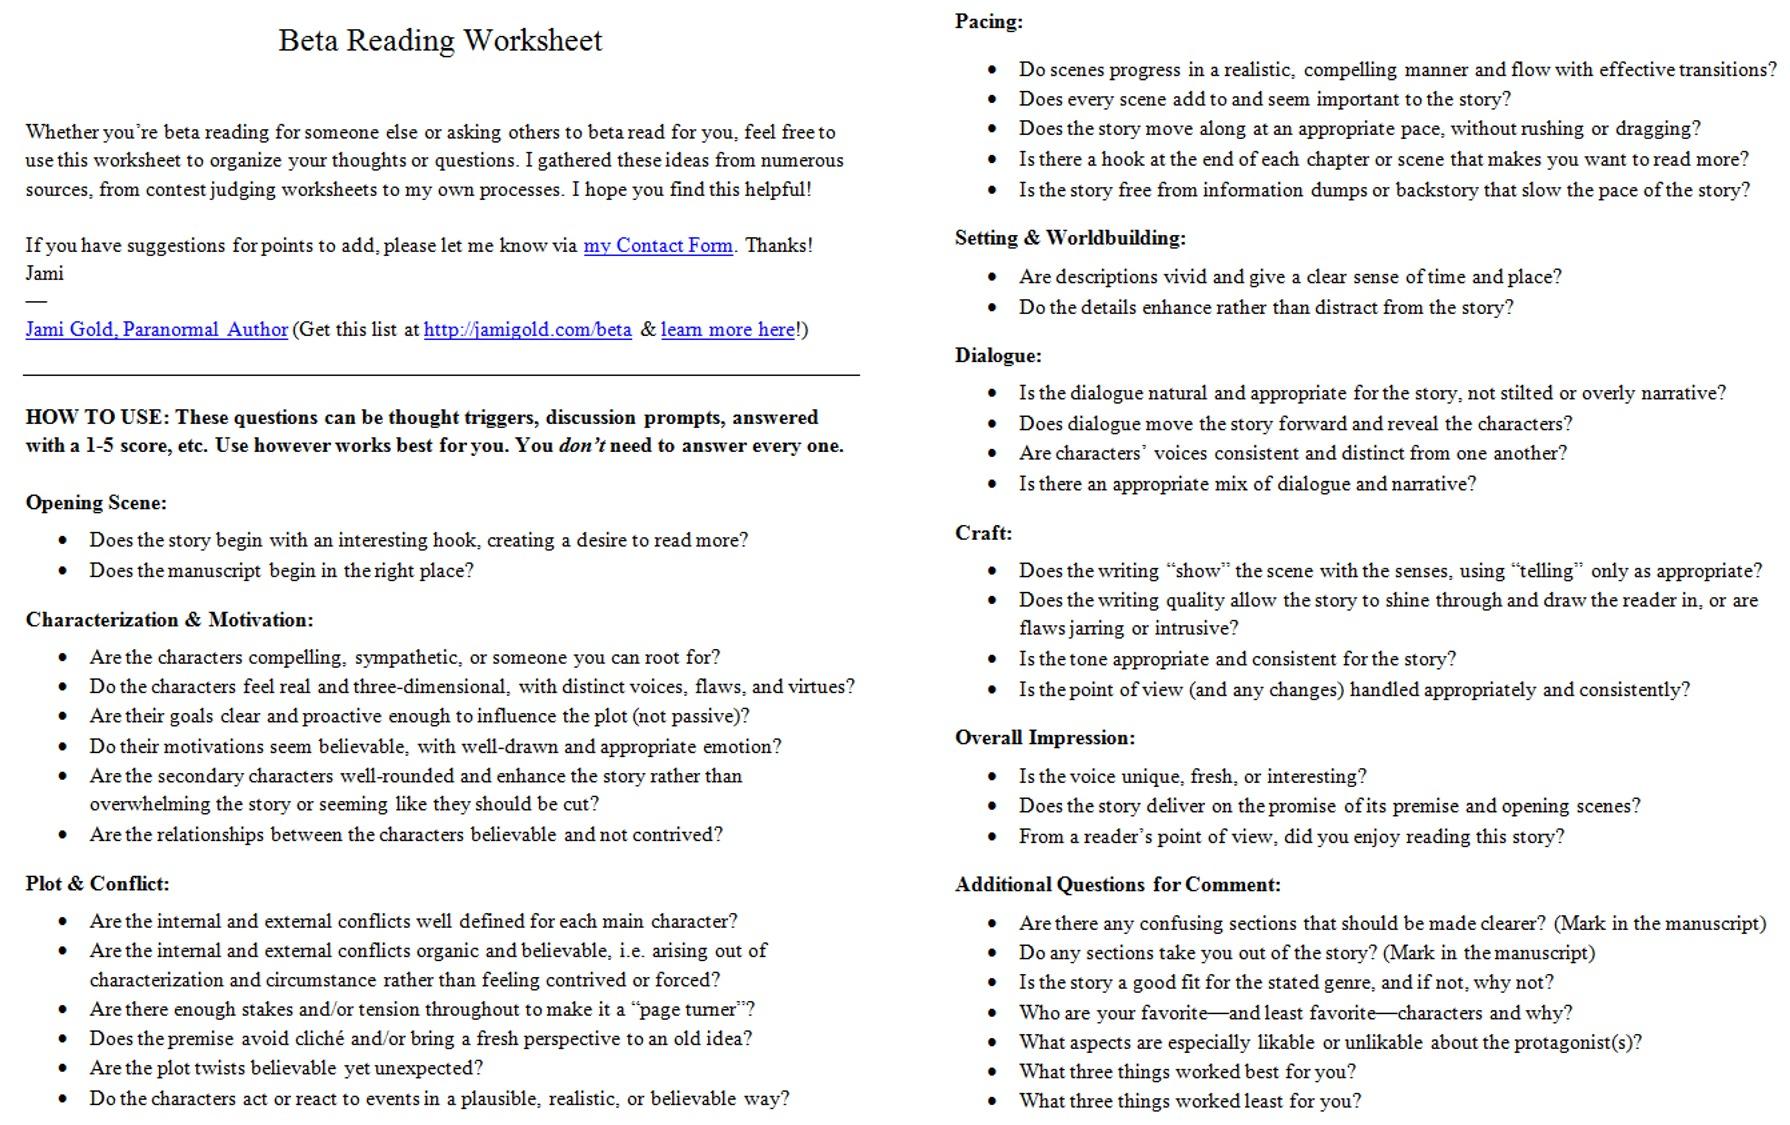 Aldiablosus  Gorgeous Worksheets For Writers  Jami Gold Paranormal Author With Extraordinary Screen Shot Of The Twopage Beta Reading Worksheet With Astonishing Expanding Expressions Worksheet Also Character Building Worksheet In Addition Word Problem Worksheets Th Grade And Free Worksheets For Nd Grade Math As Well As Free Handwriting Worksheets For Preschool Additionally Drawing Conclusions Worksheets St Grade From Jamigoldcom With Aldiablosus  Extraordinary Worksheets For Writers  Jami Gold Paranormal Author With Astonishing Screen Shot Of The Twopage Beta Reading Worksheet And Gorgeous Expanding Expressions Worksheet Also Character Building Worksheet In Addition Word Problem Worksheets Th Grade From Jamigoldcom